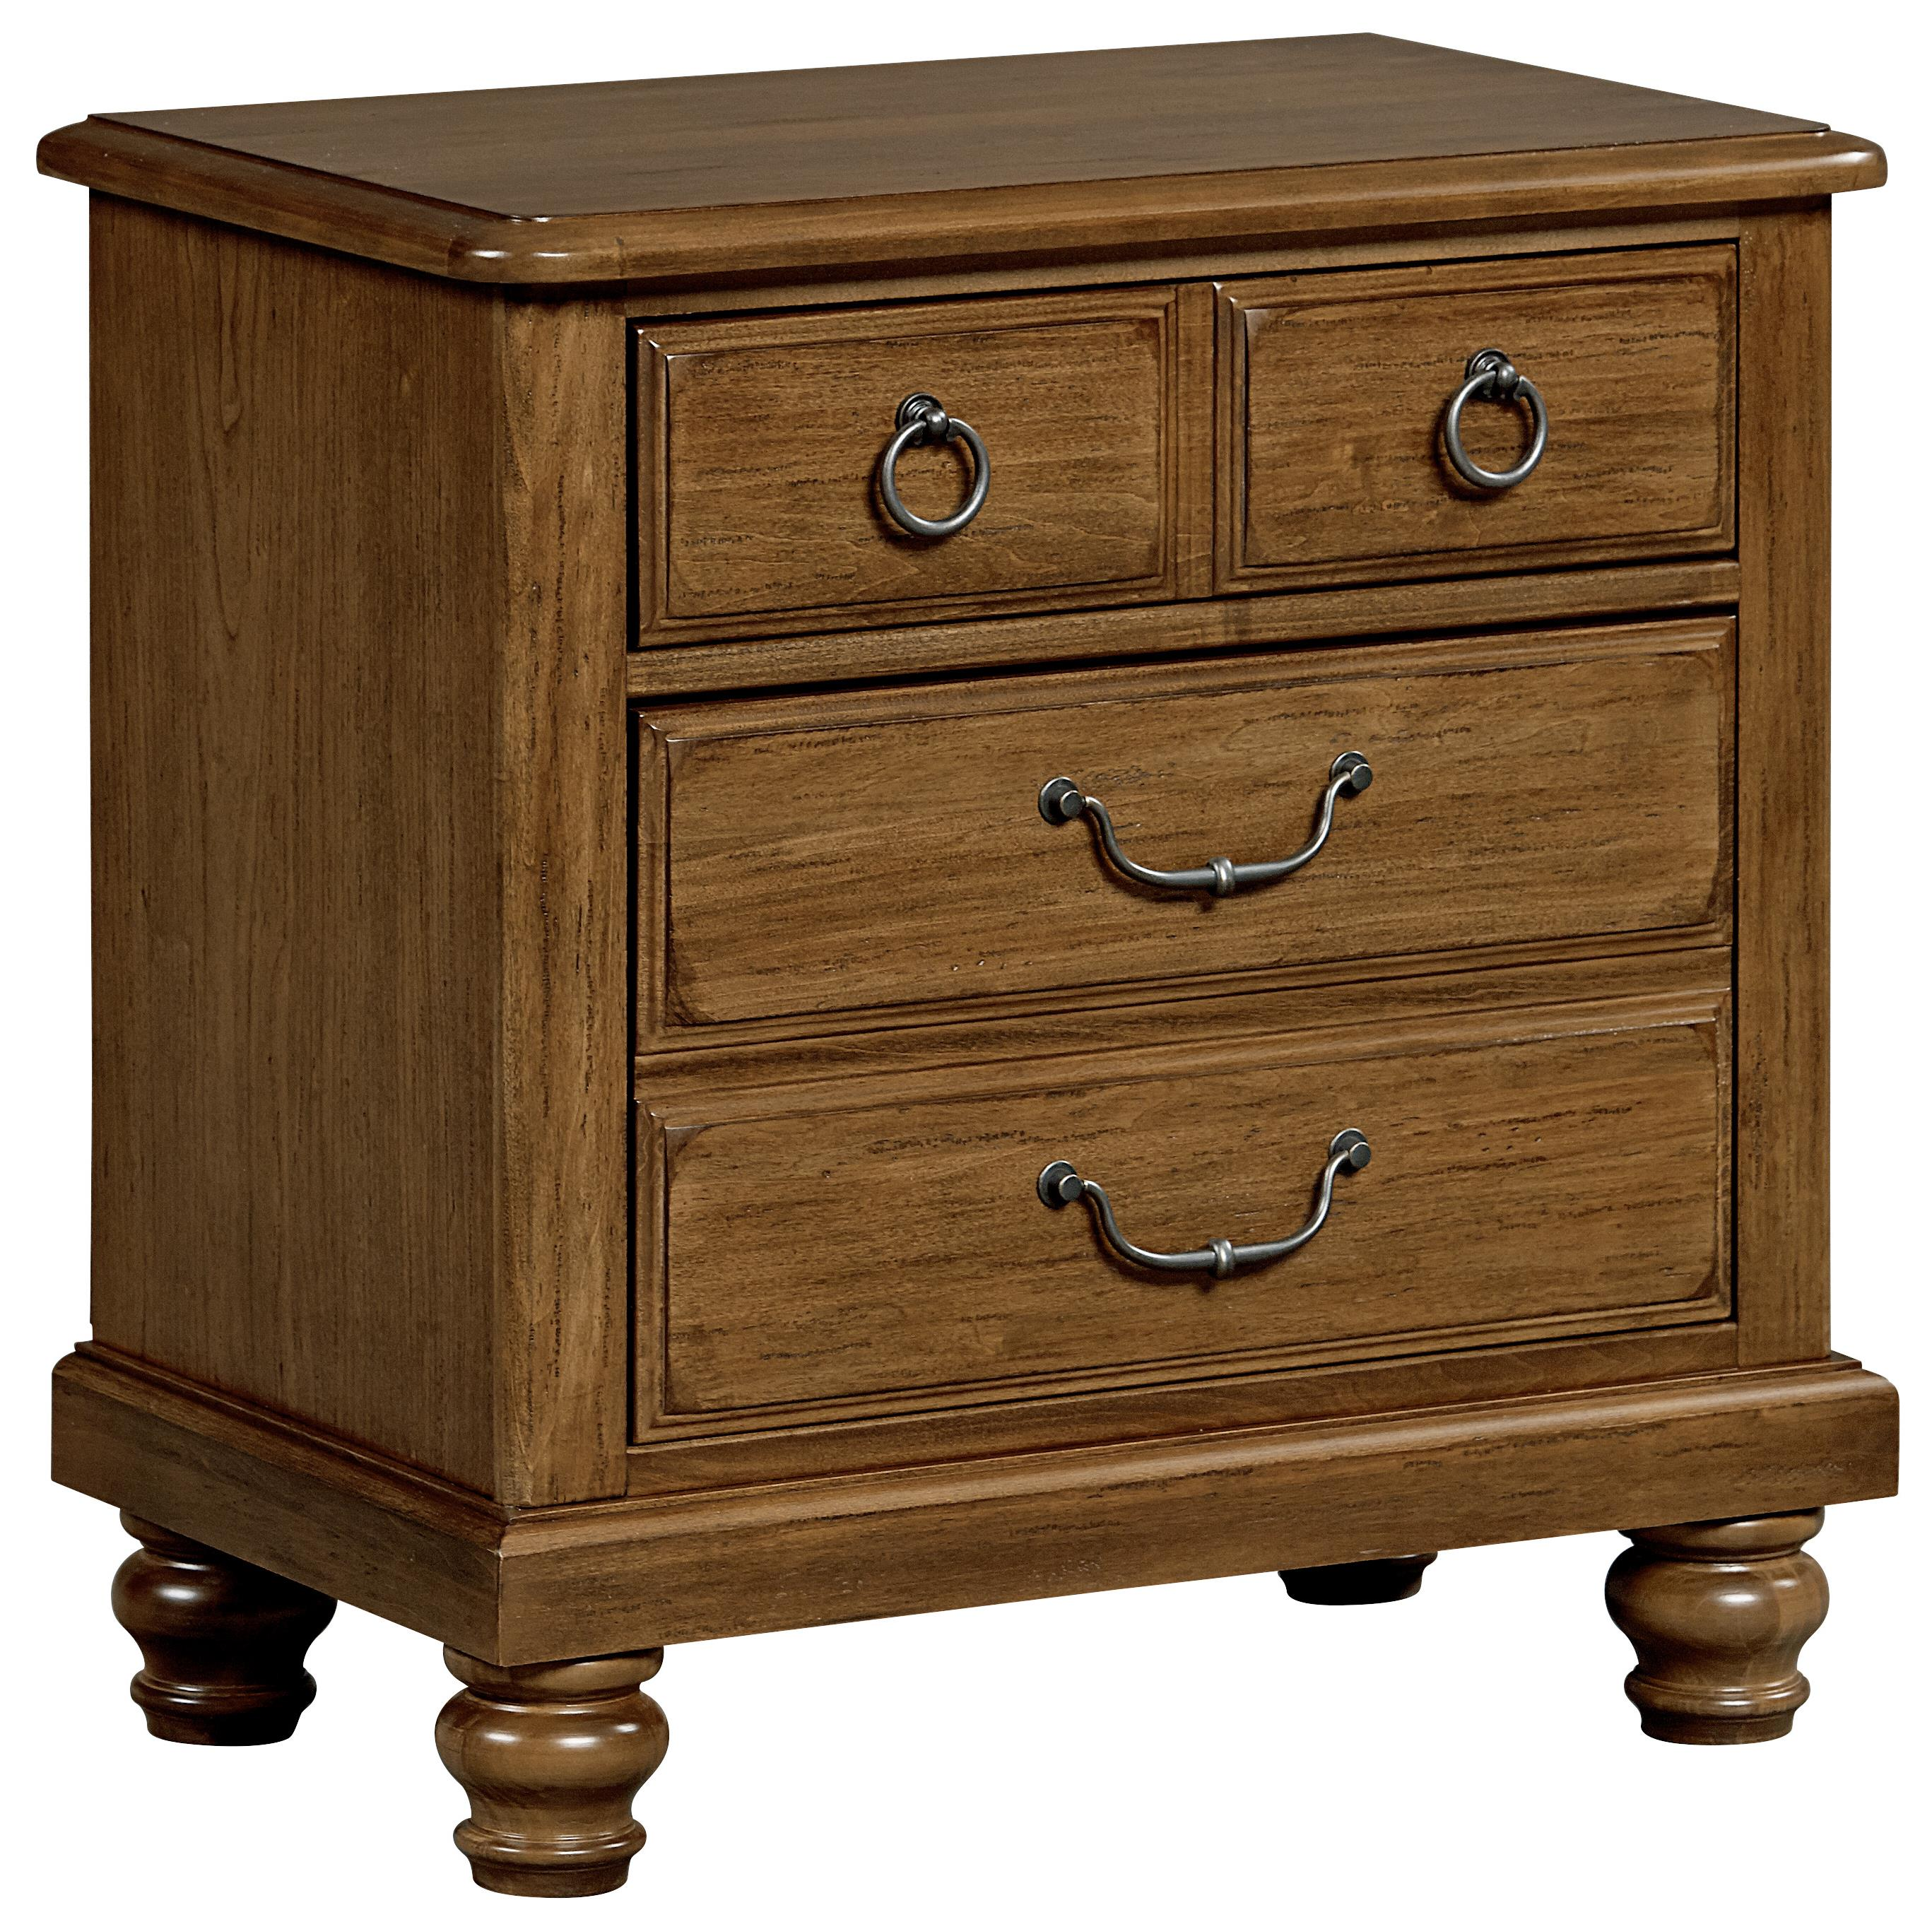 Vaughan Bassett Arrendelle Night Stand - 2 Drawers - Item Number: 440-226